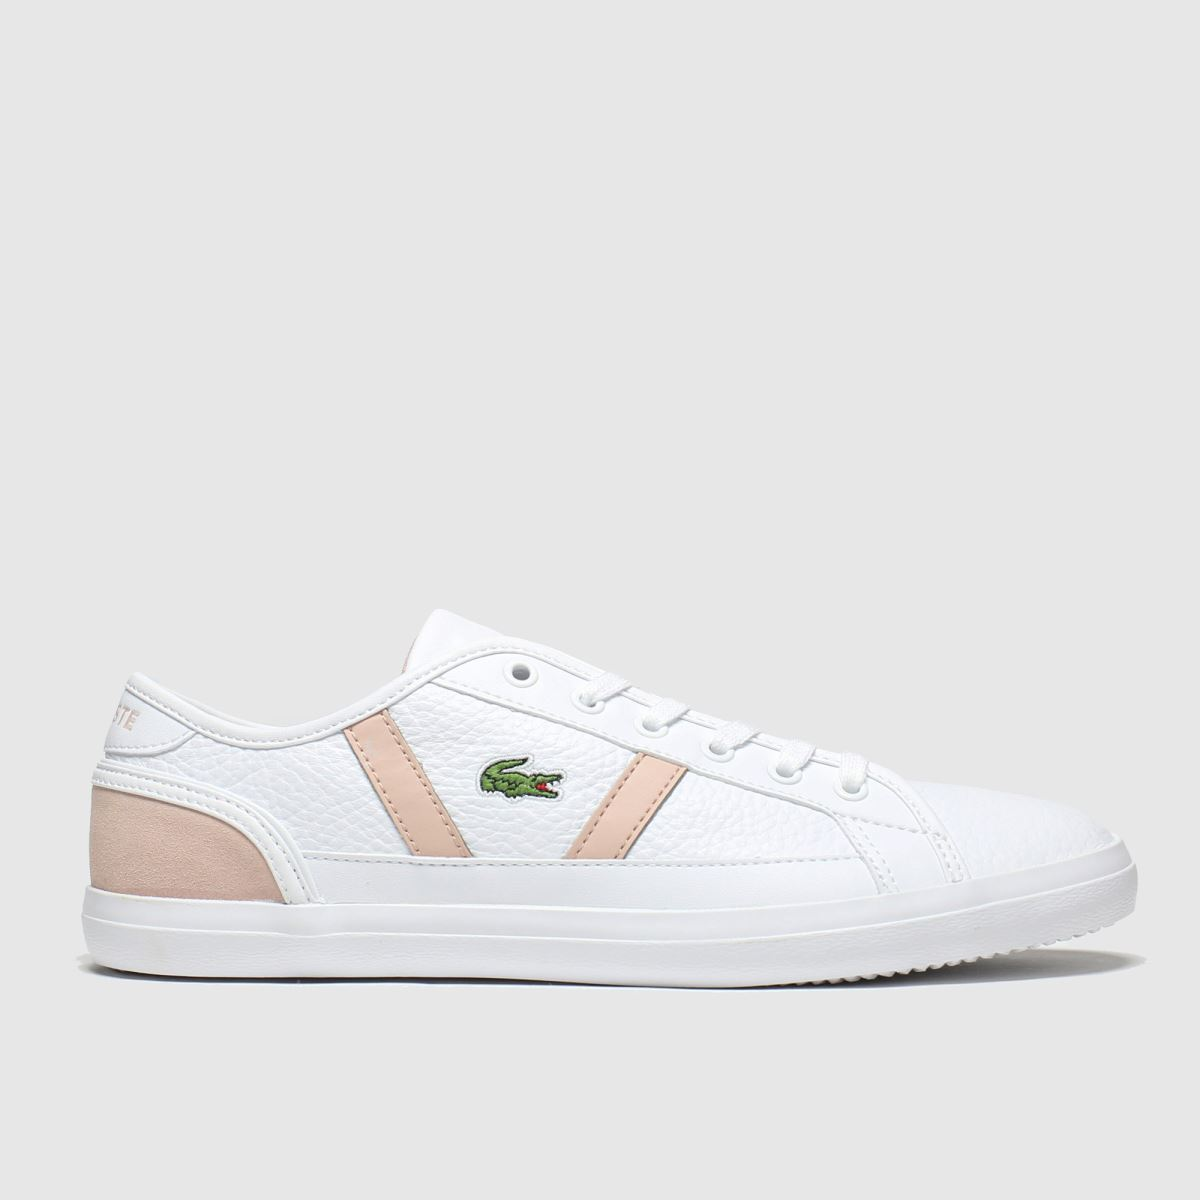 Lacoste White & Pink Sideline Trainers